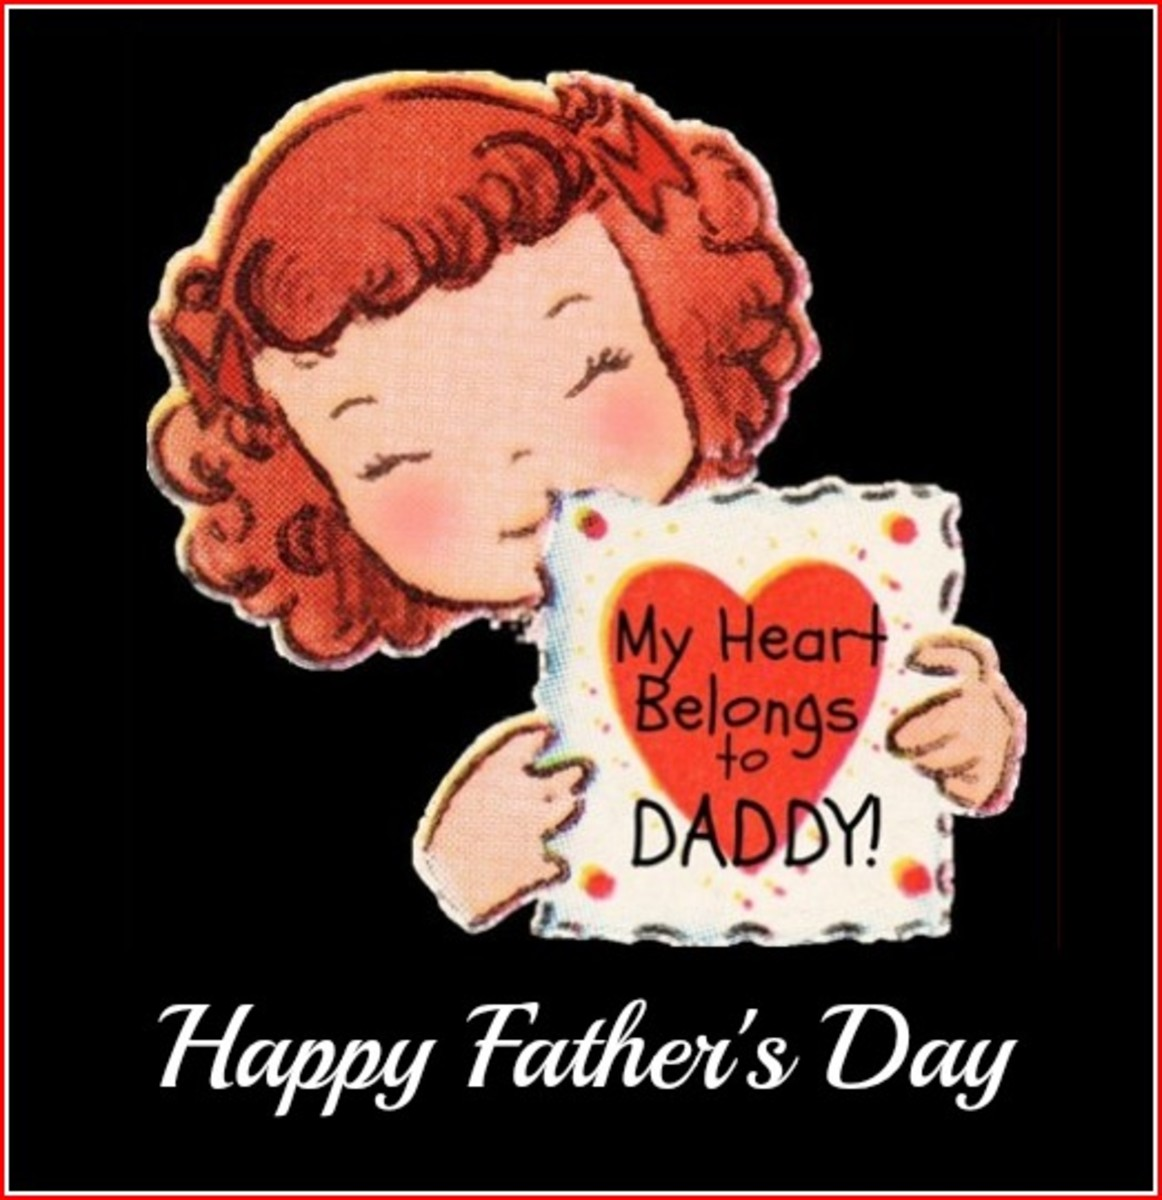 'My Heart Belongs to Daddy' and 'Happy Father's Day'